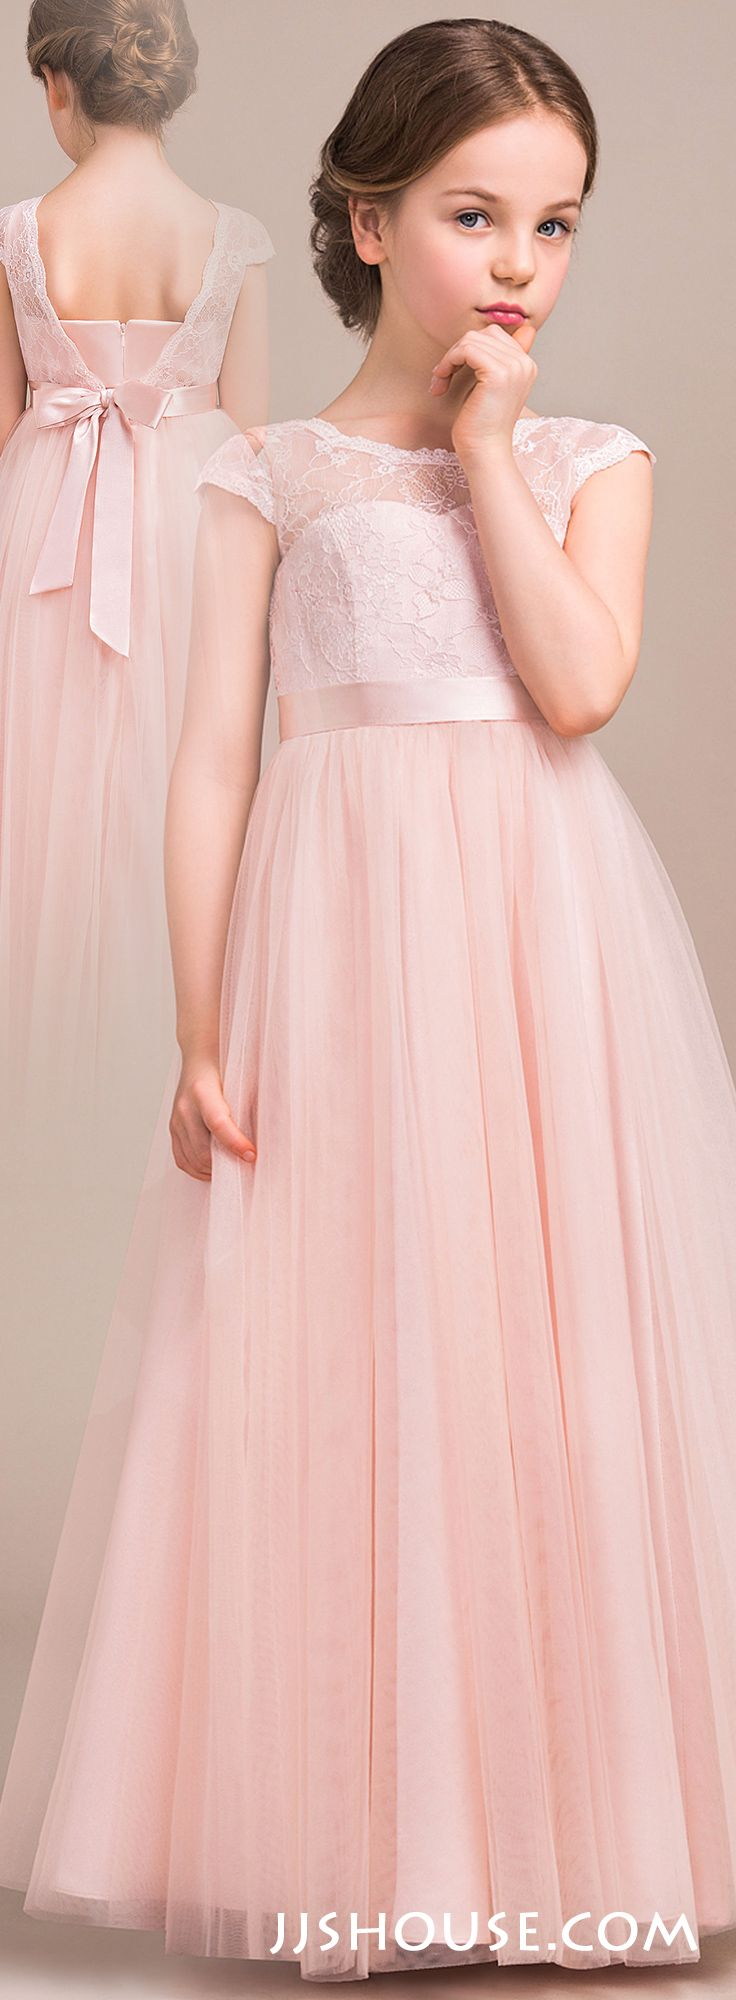 Alineprincess scoop neck floorlength tulle lace junior bridesmaid